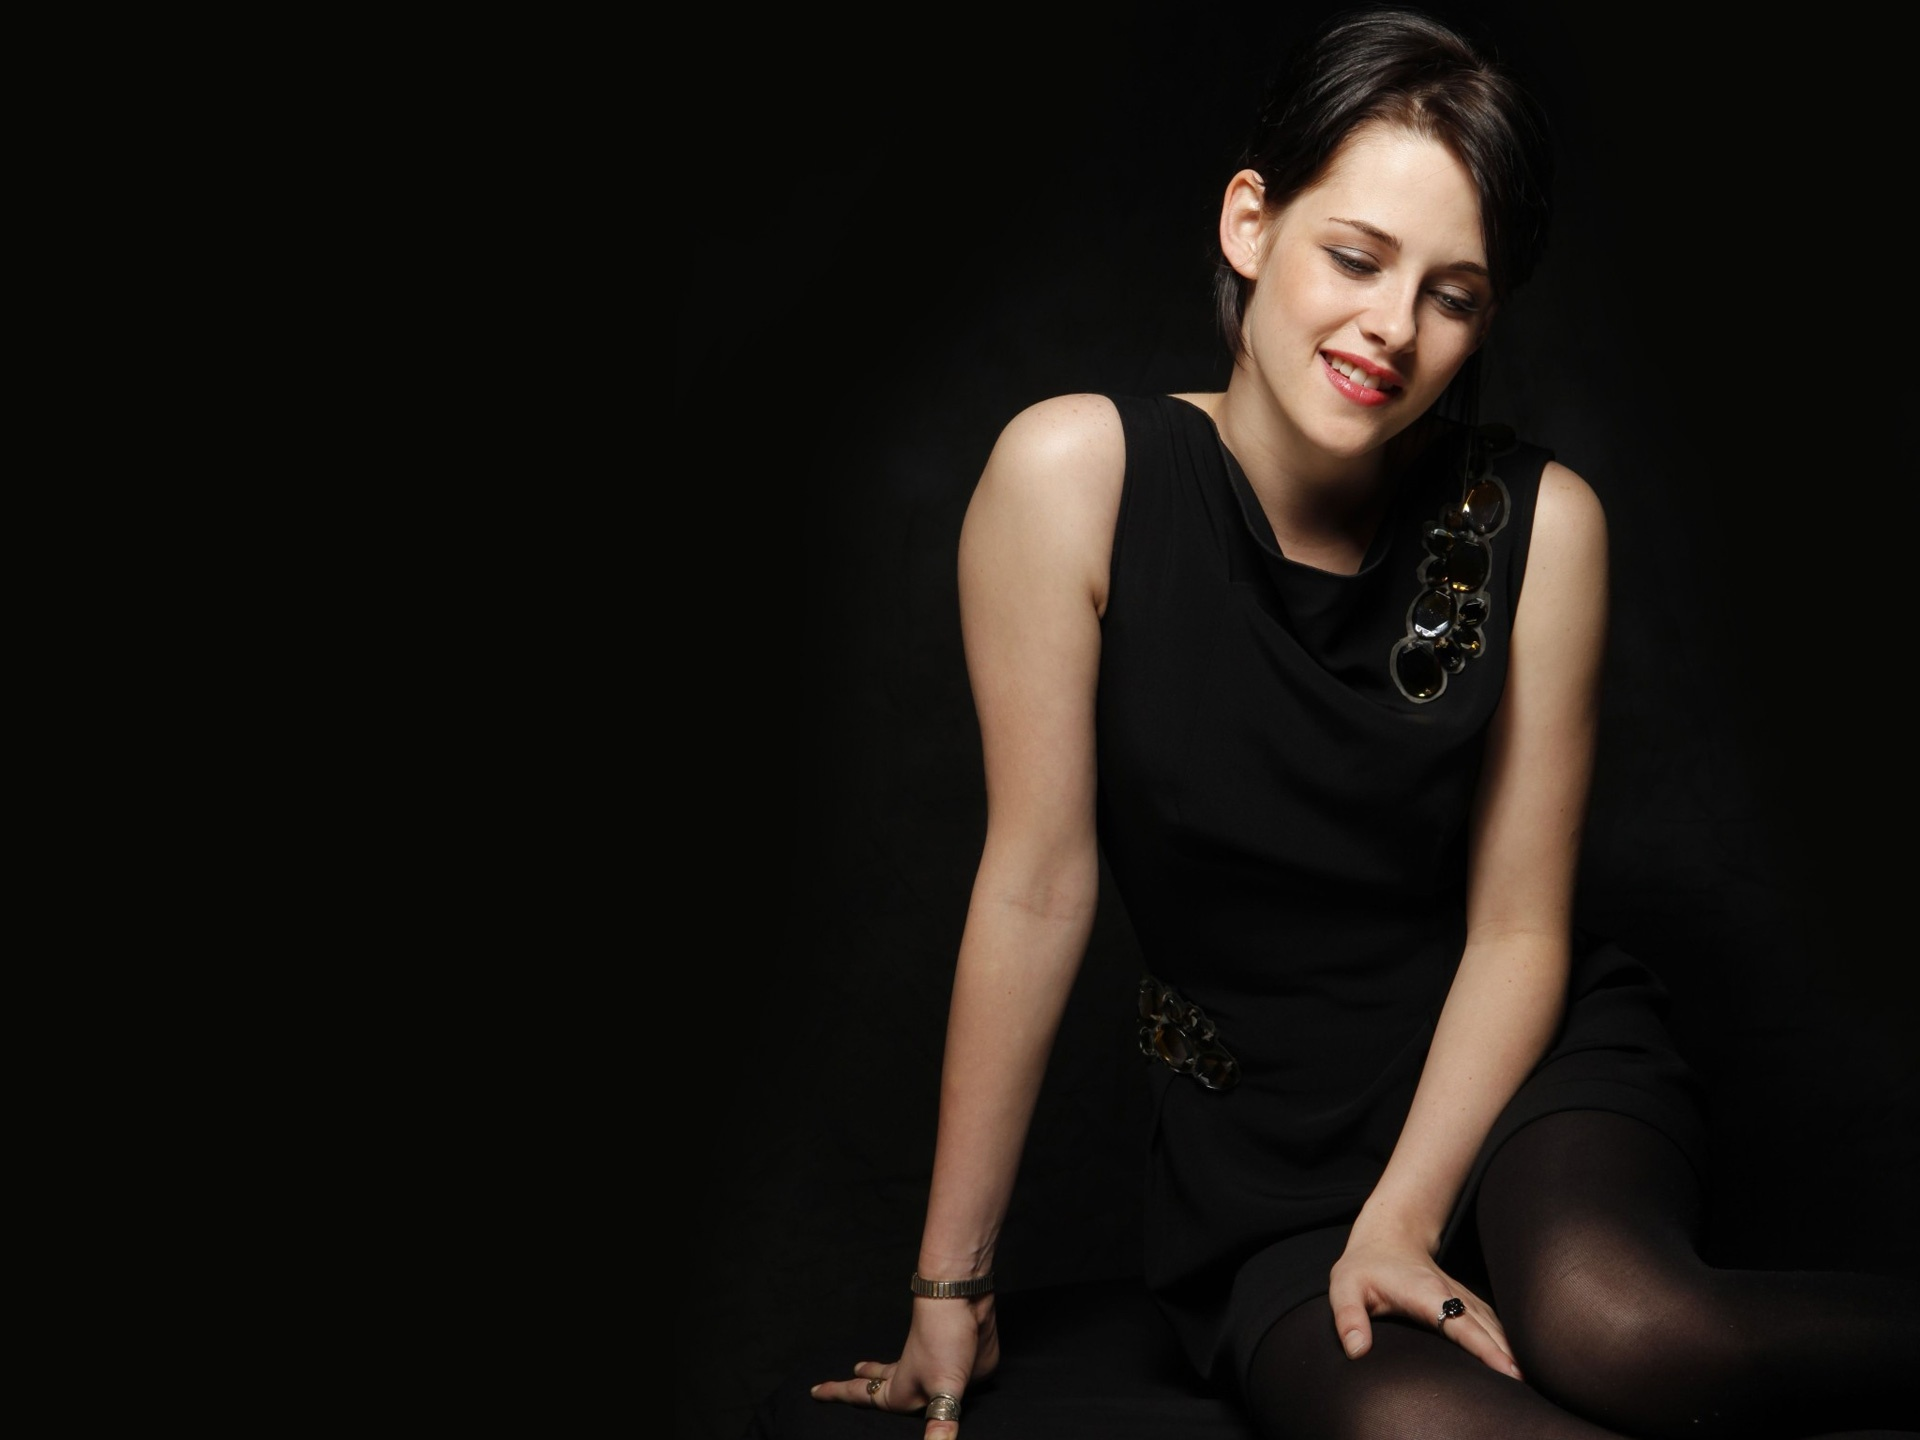 kristen stewart wallpapers hd A1